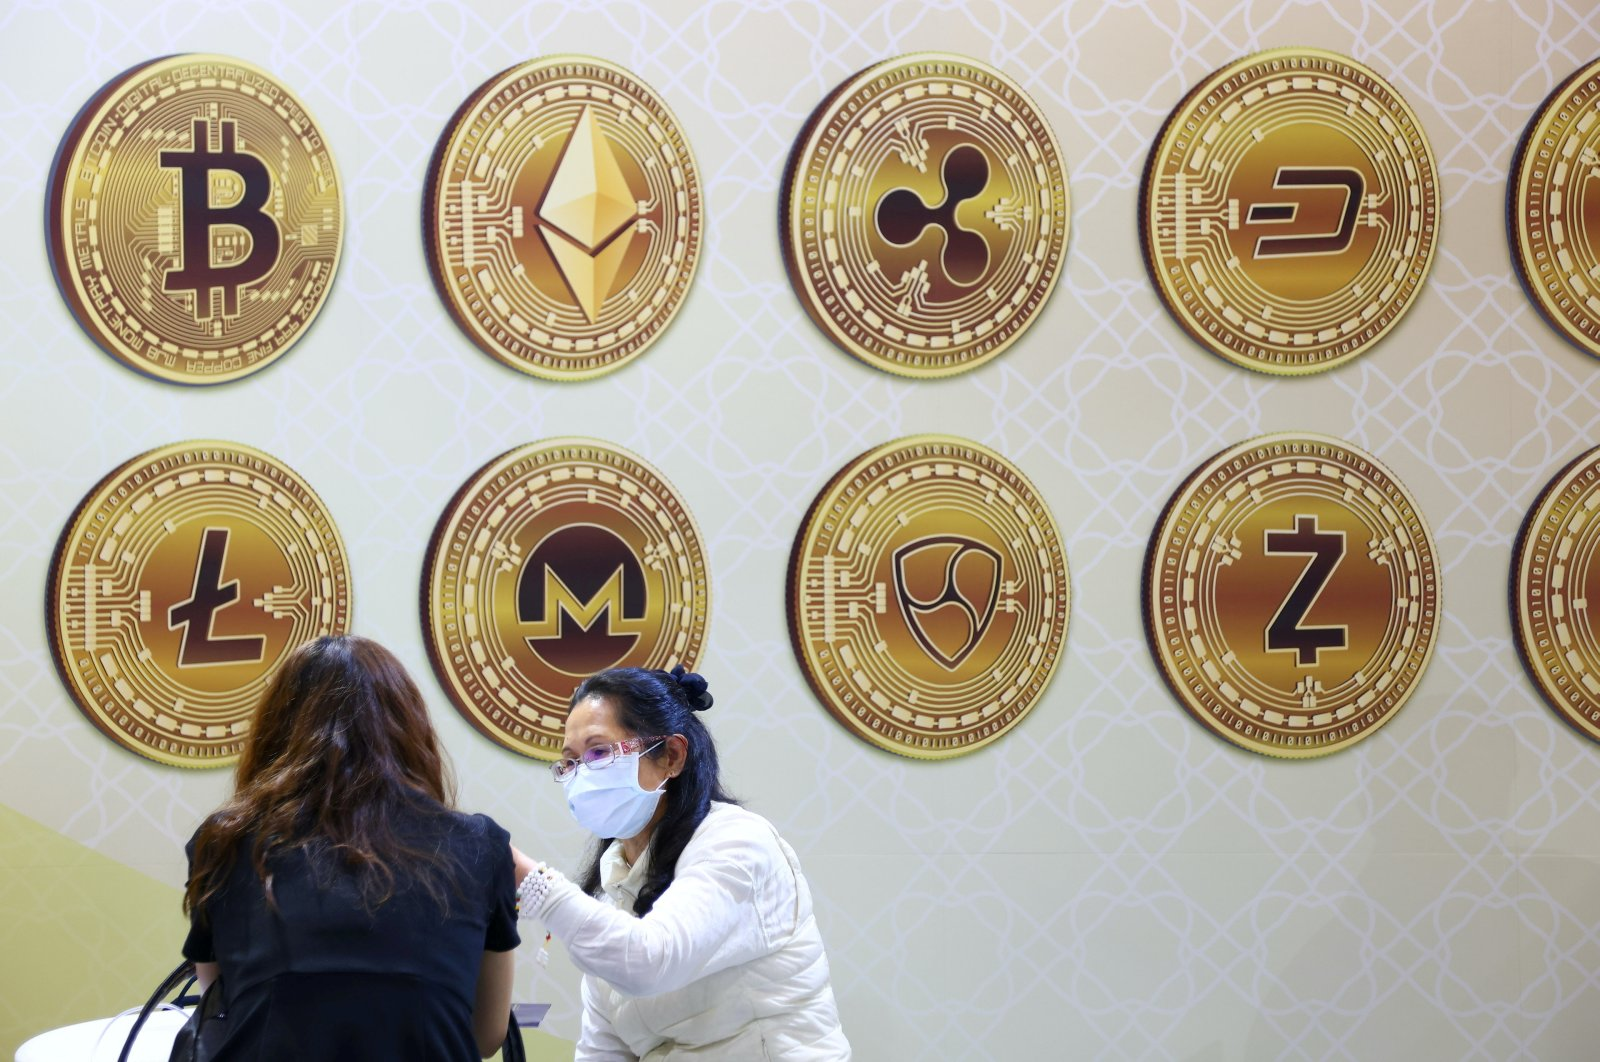 Customers talk against a backboard with cryptocurrency signs during the 2020 Taipei International Finance Expo in Taipei, Taiwan, Nov. 27, 2020. (Reuters Photo)